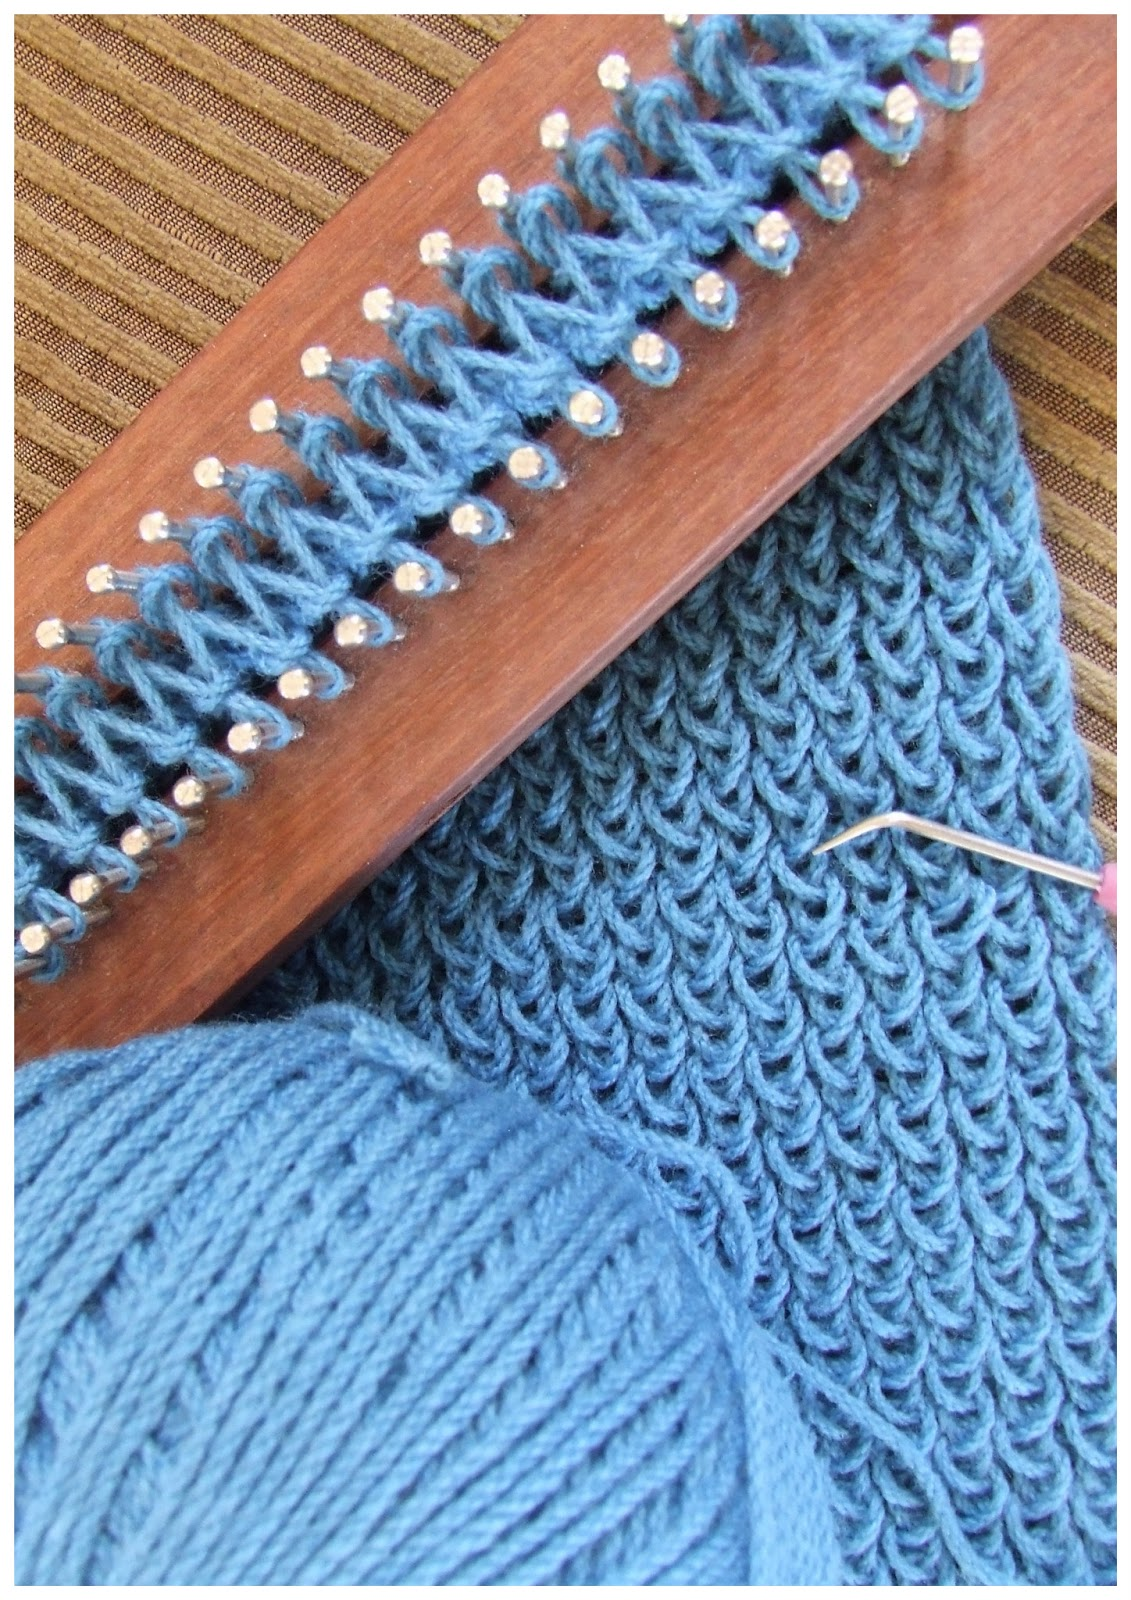 Crocheting Loom : FitzBirch Crafts: Loom Knitting